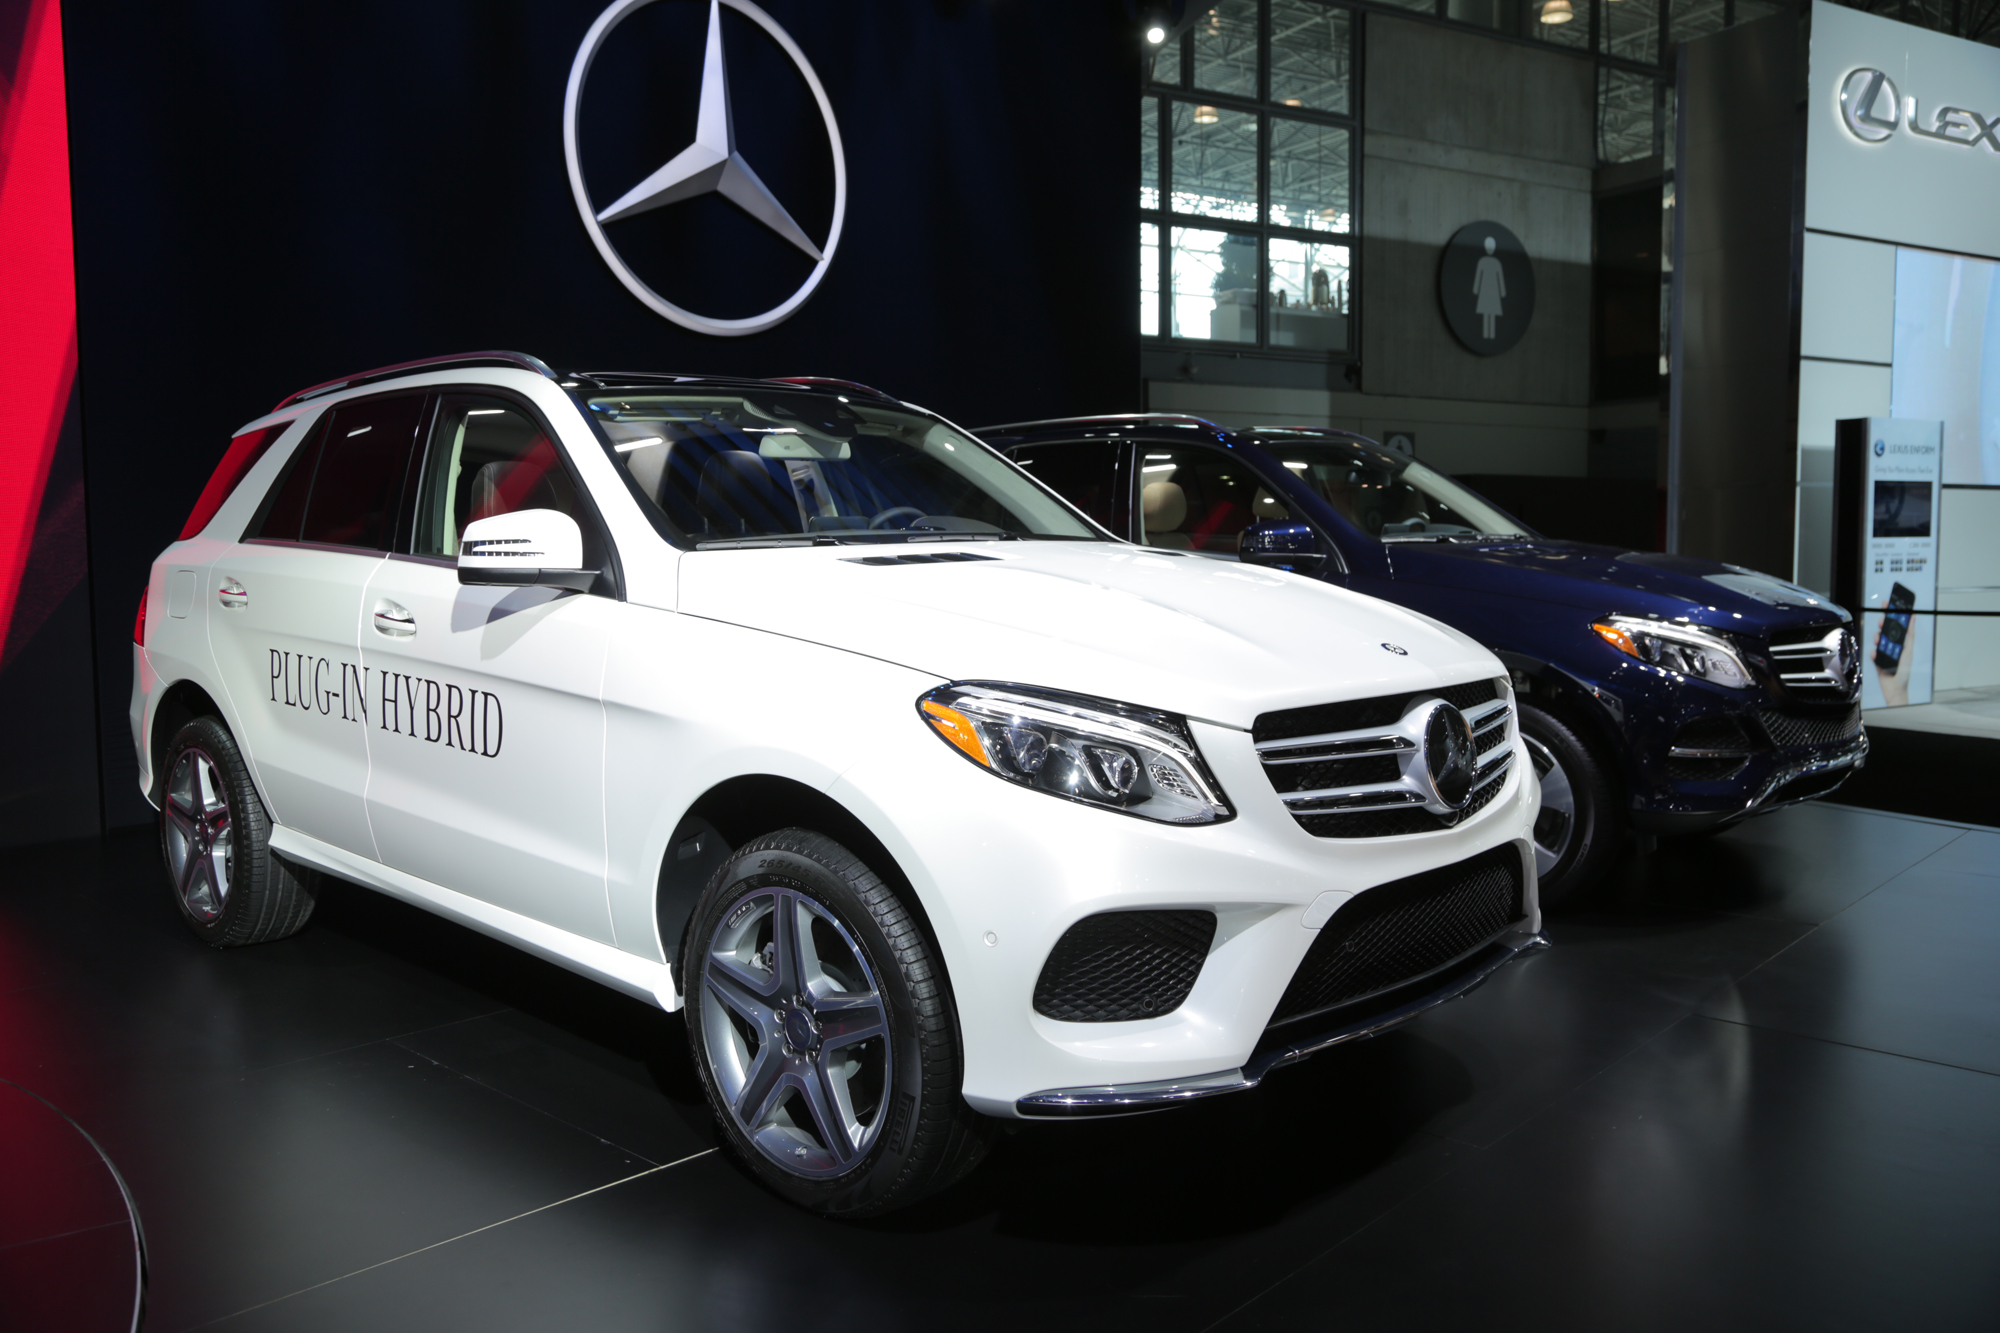 Mercedes benz 2015 ml 400 suv review 2017 2018 best for Mercedes benz los angeles area